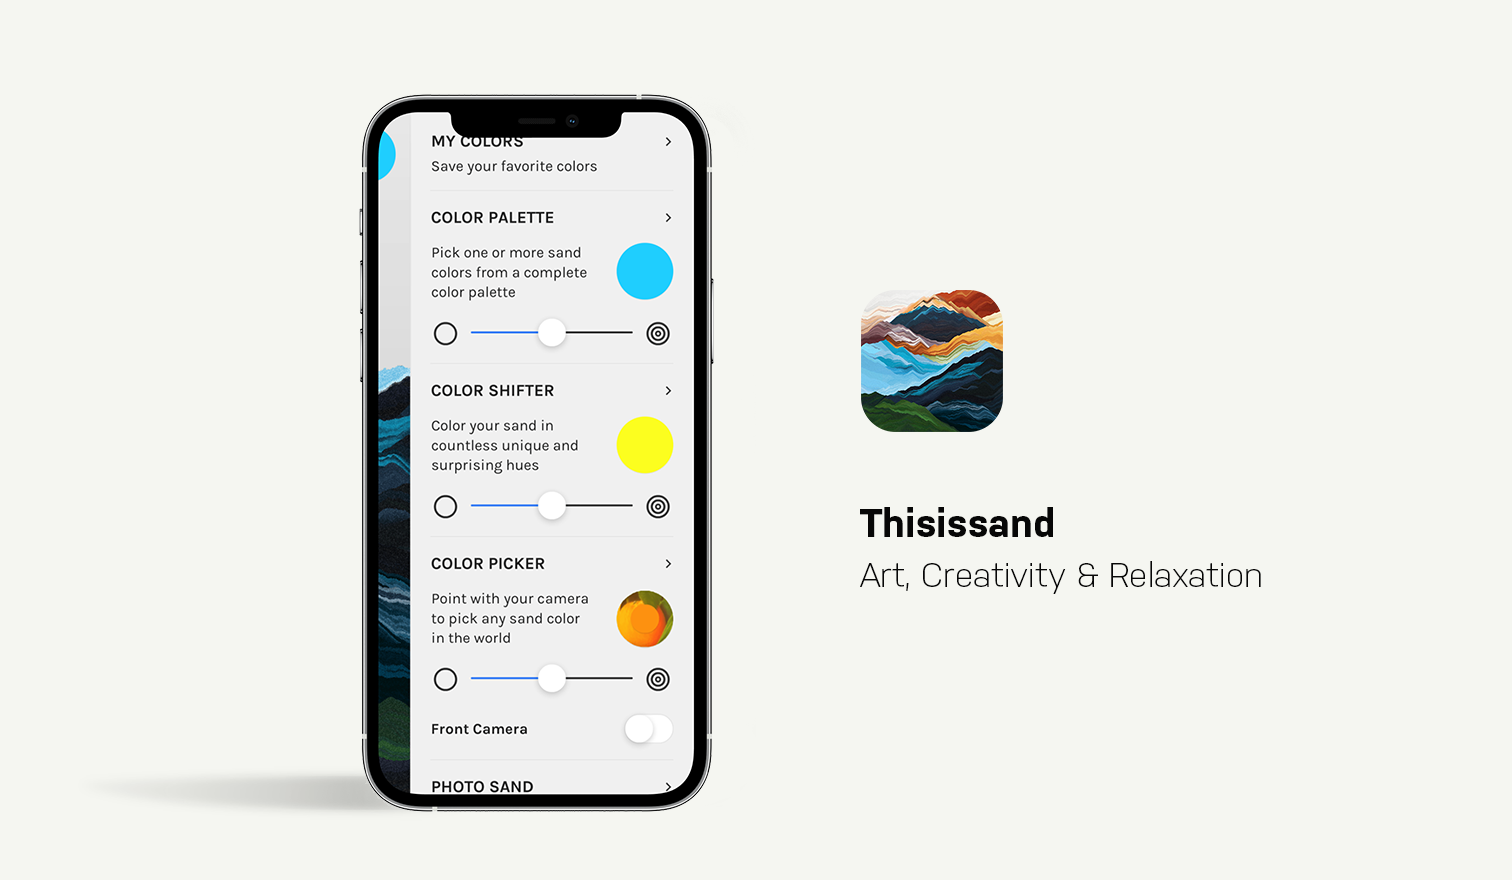 thisissand app